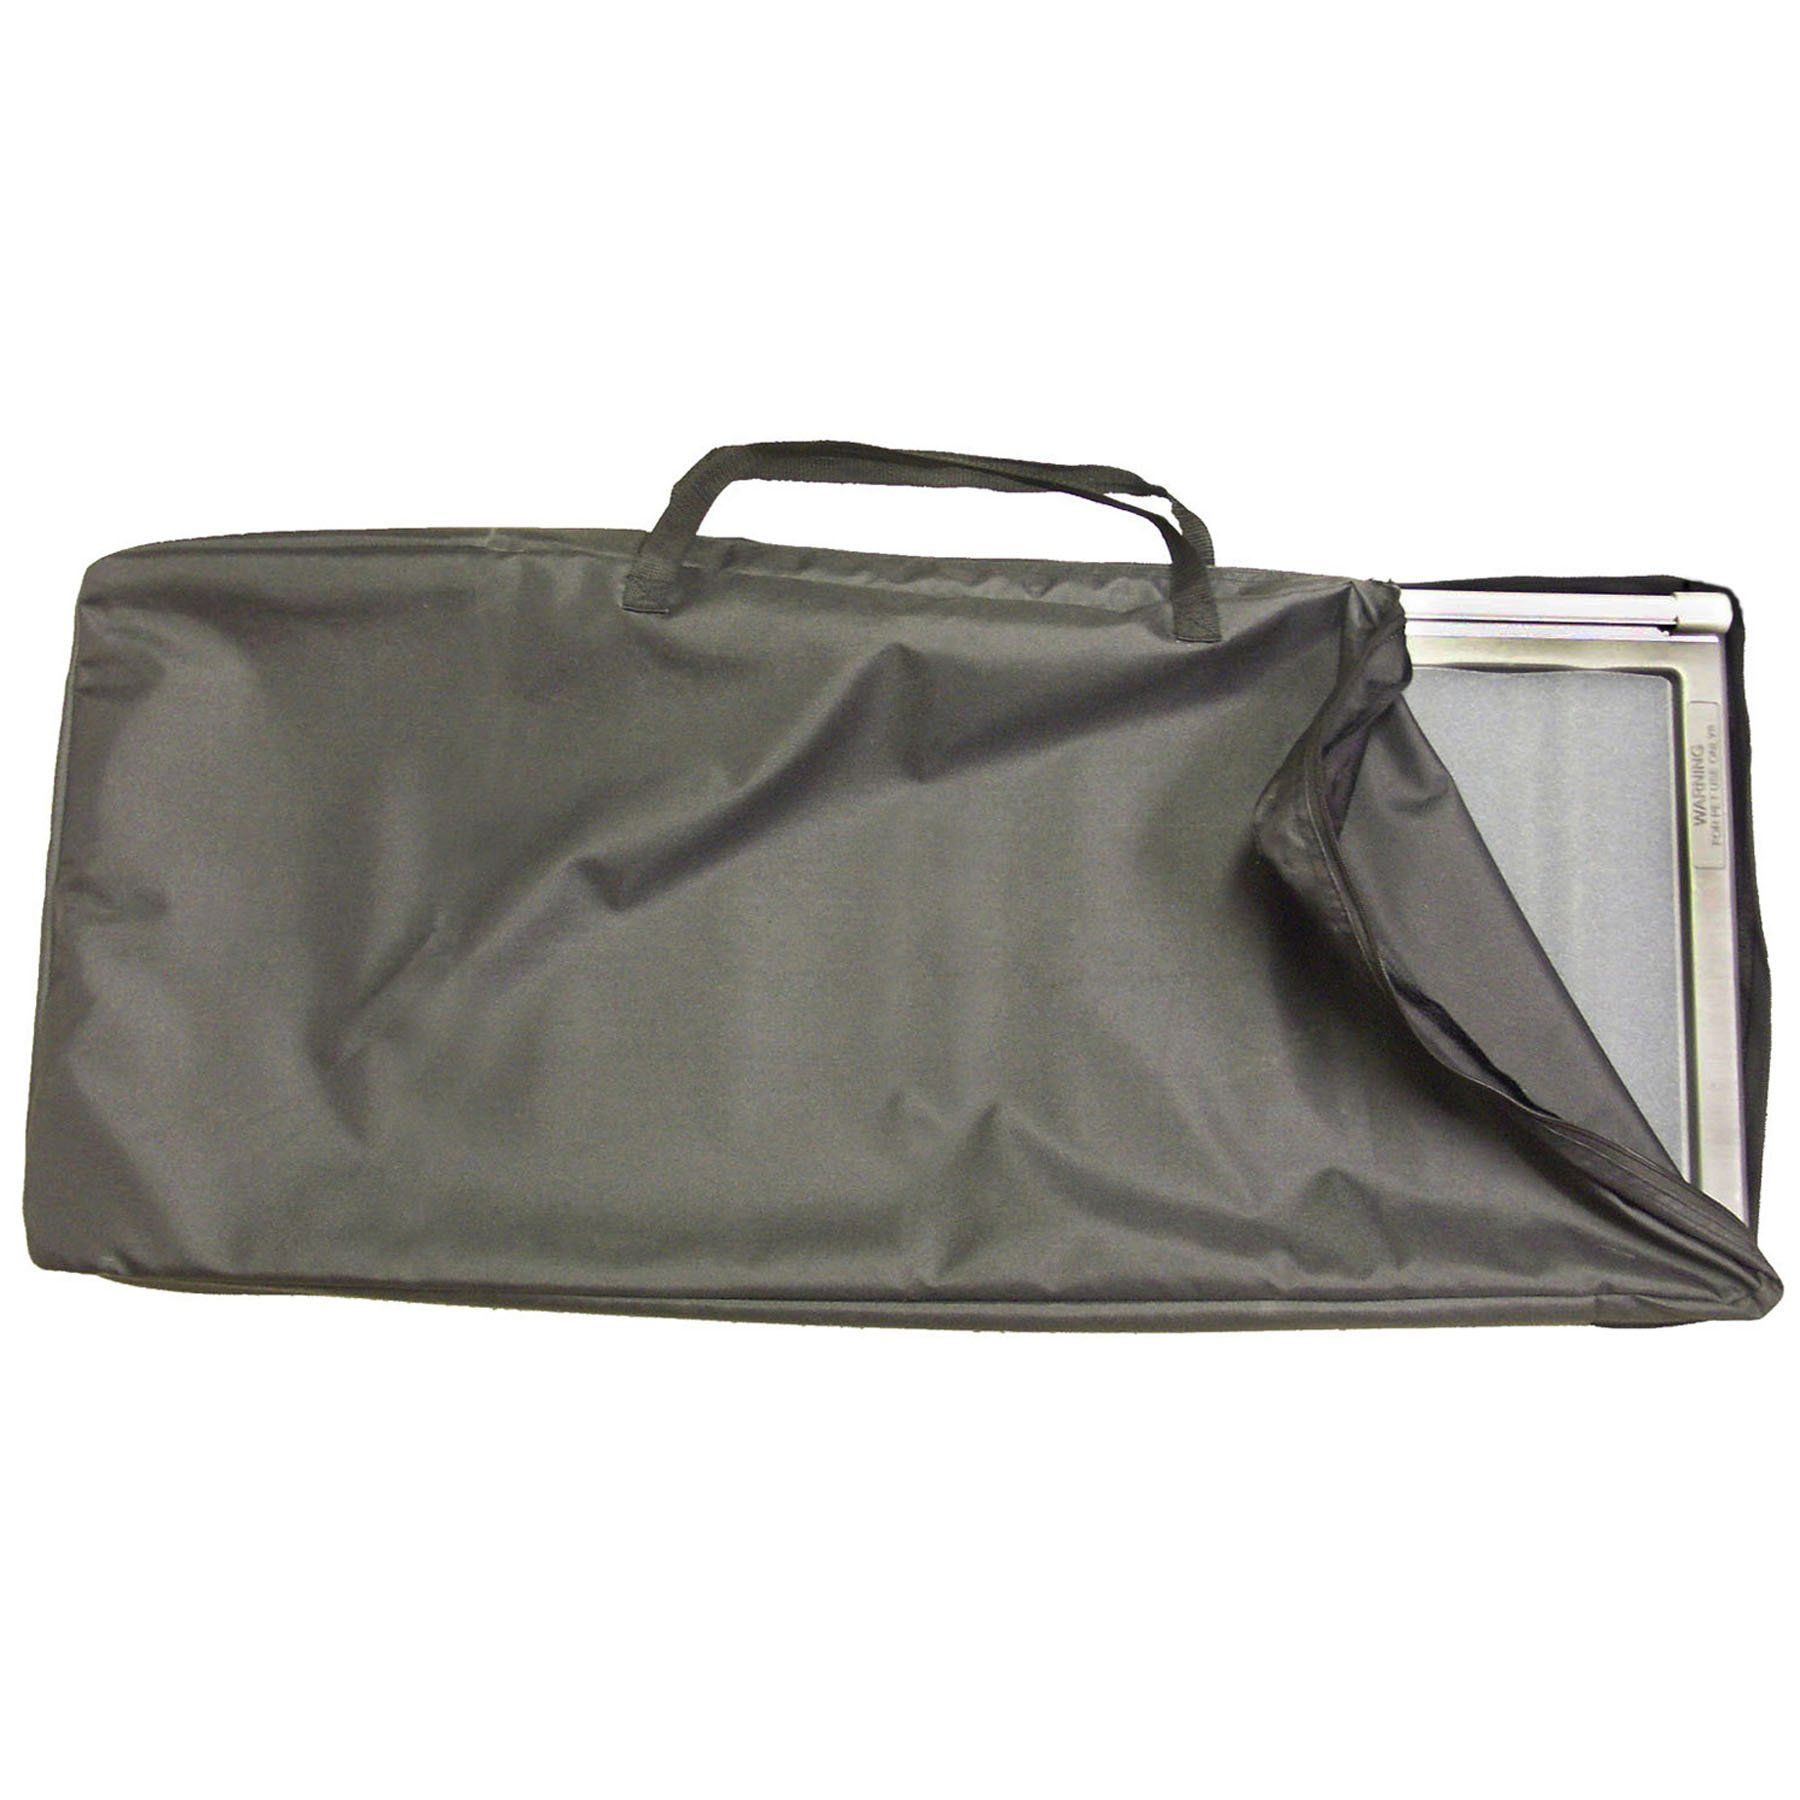 Solvit Carrying Case for Triscope Pet Ramp